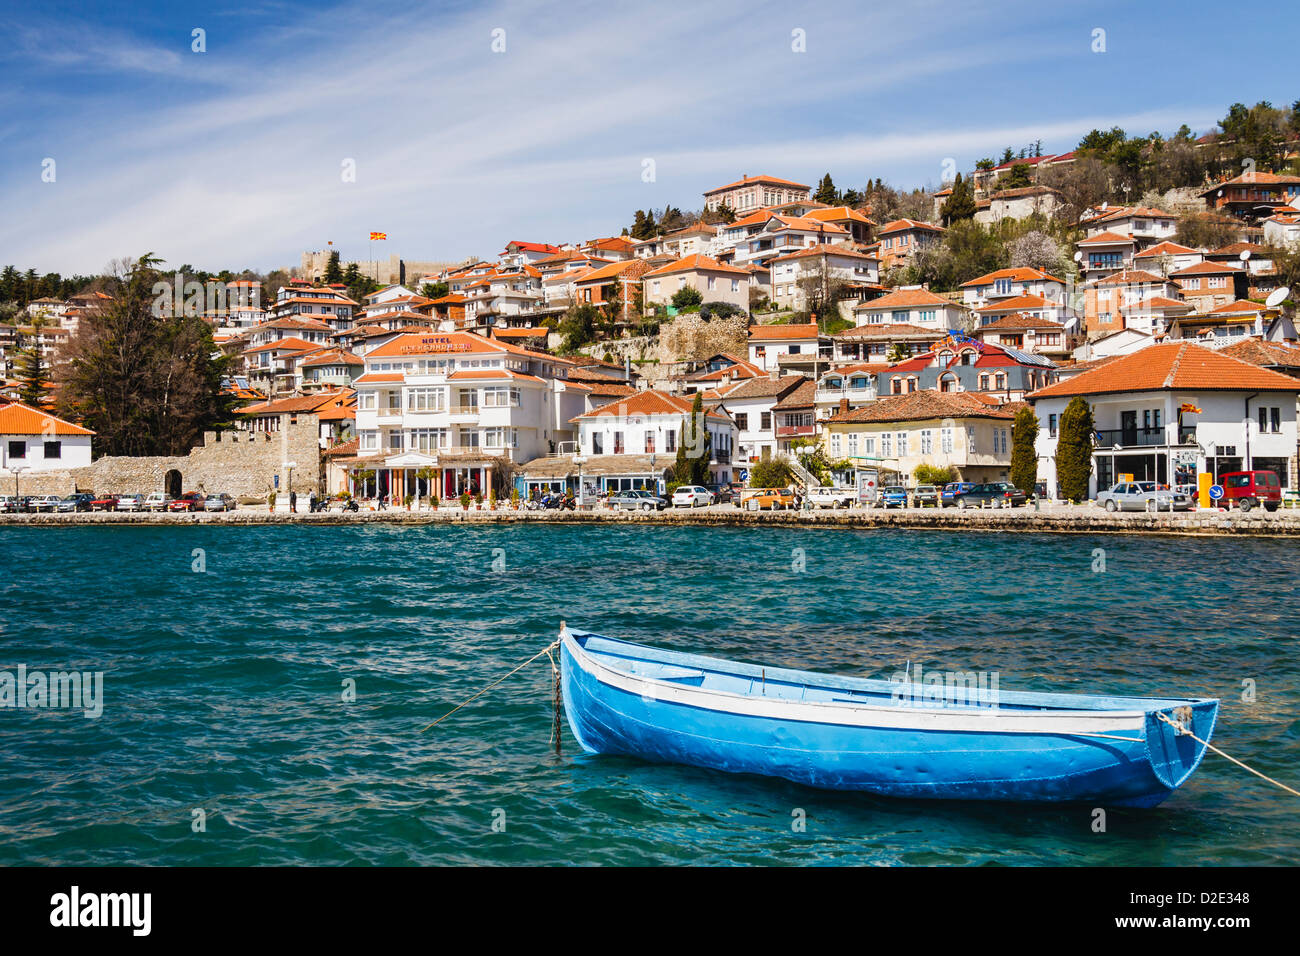 Ohrid old town and lake, Macedonia - Stock Image